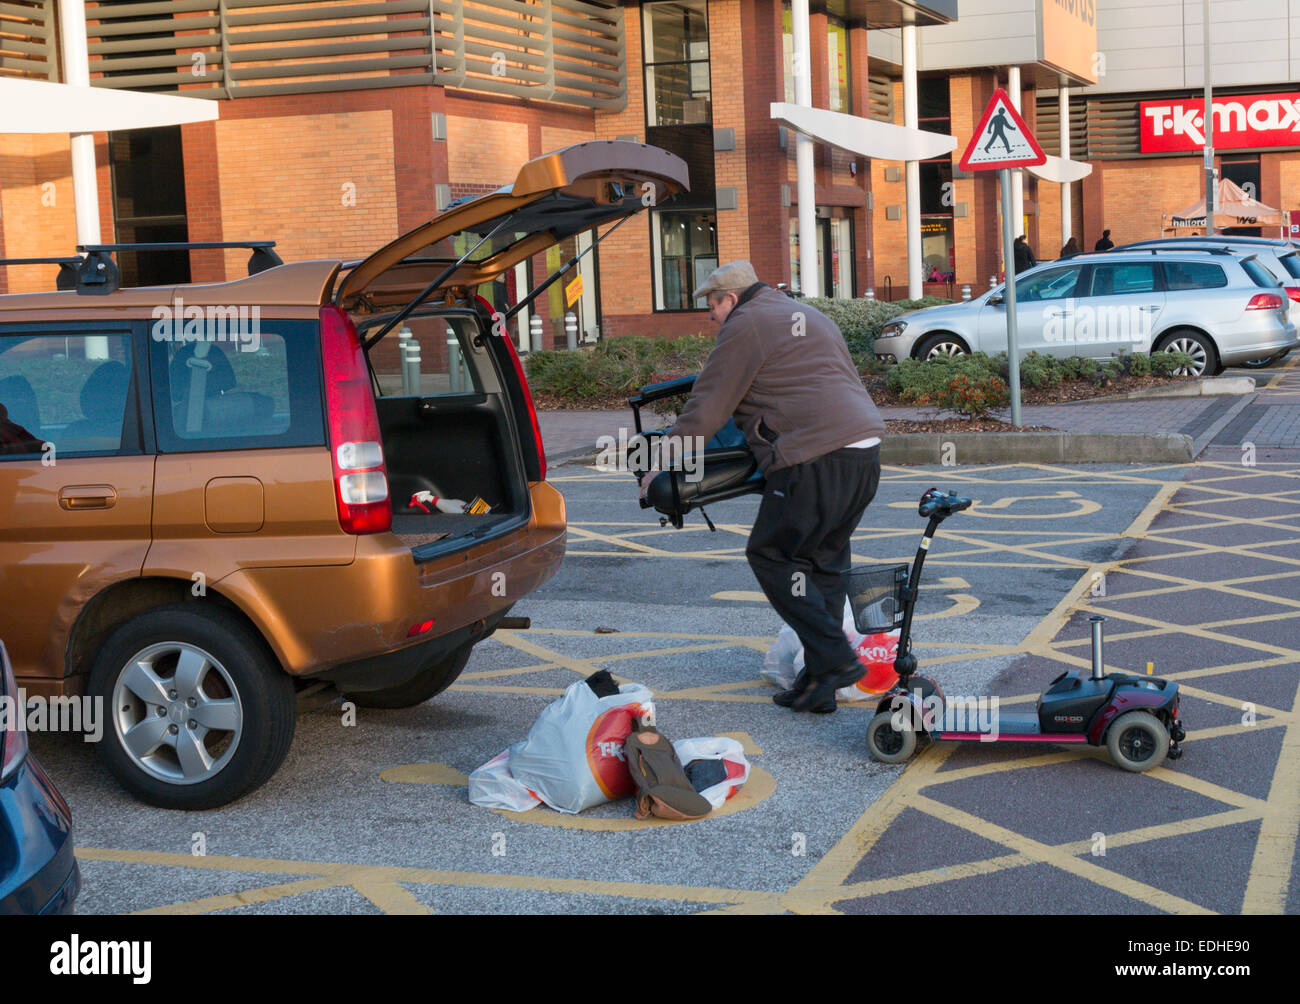 Man loading a disabled persons mobility scooter and bags into the back of a small hatchback car in a shopping centre - Stock Image